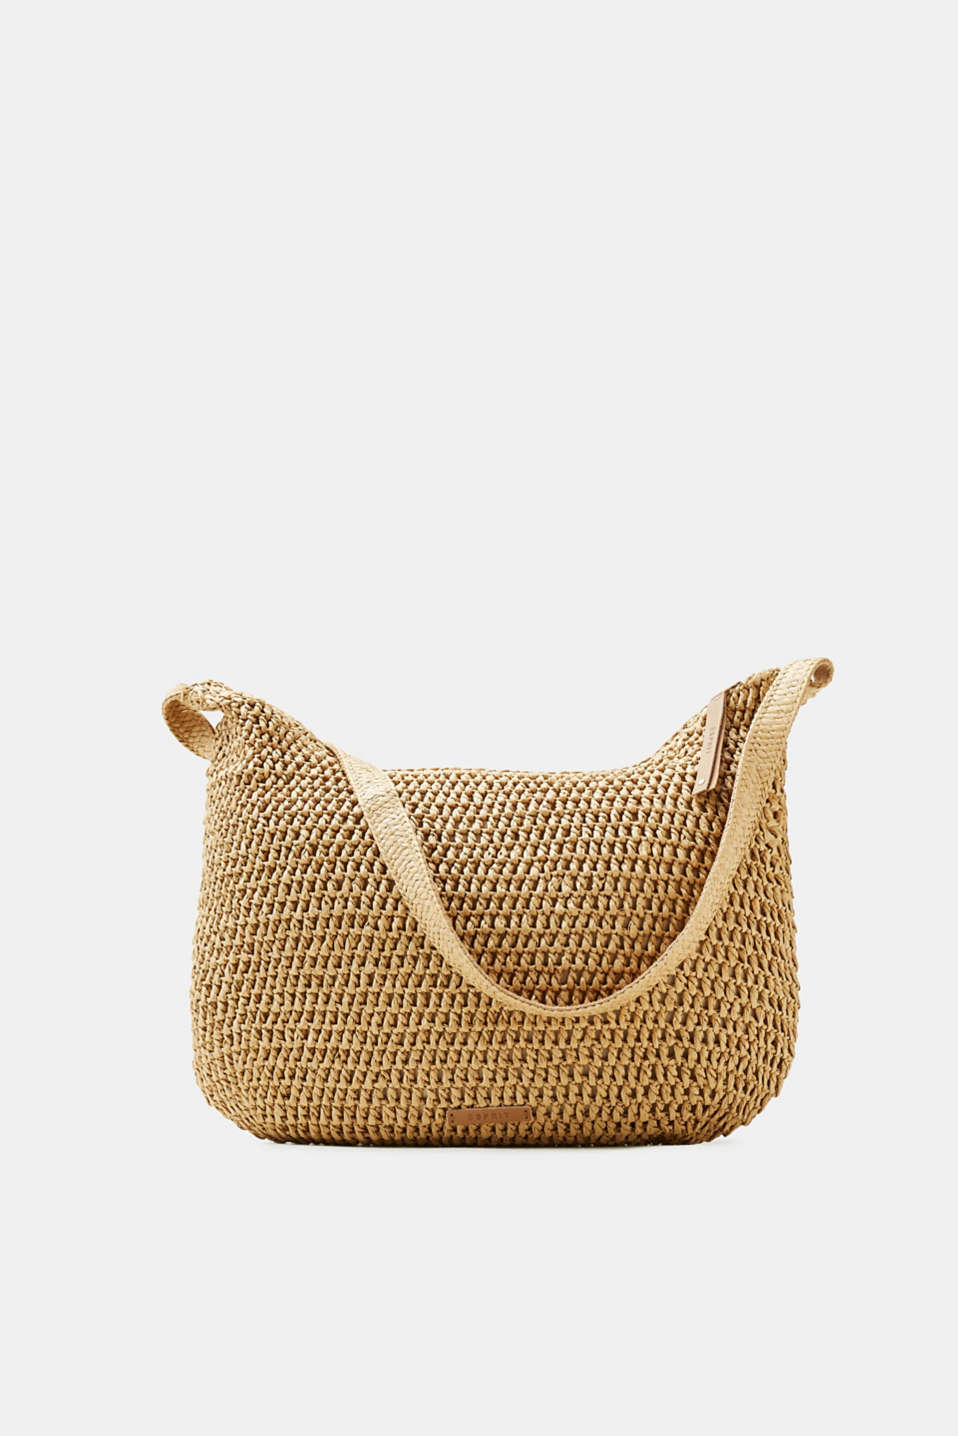 Sensationally summery: spacious shoulder bag made of woven bast with a practical zip plus genuine leather details!